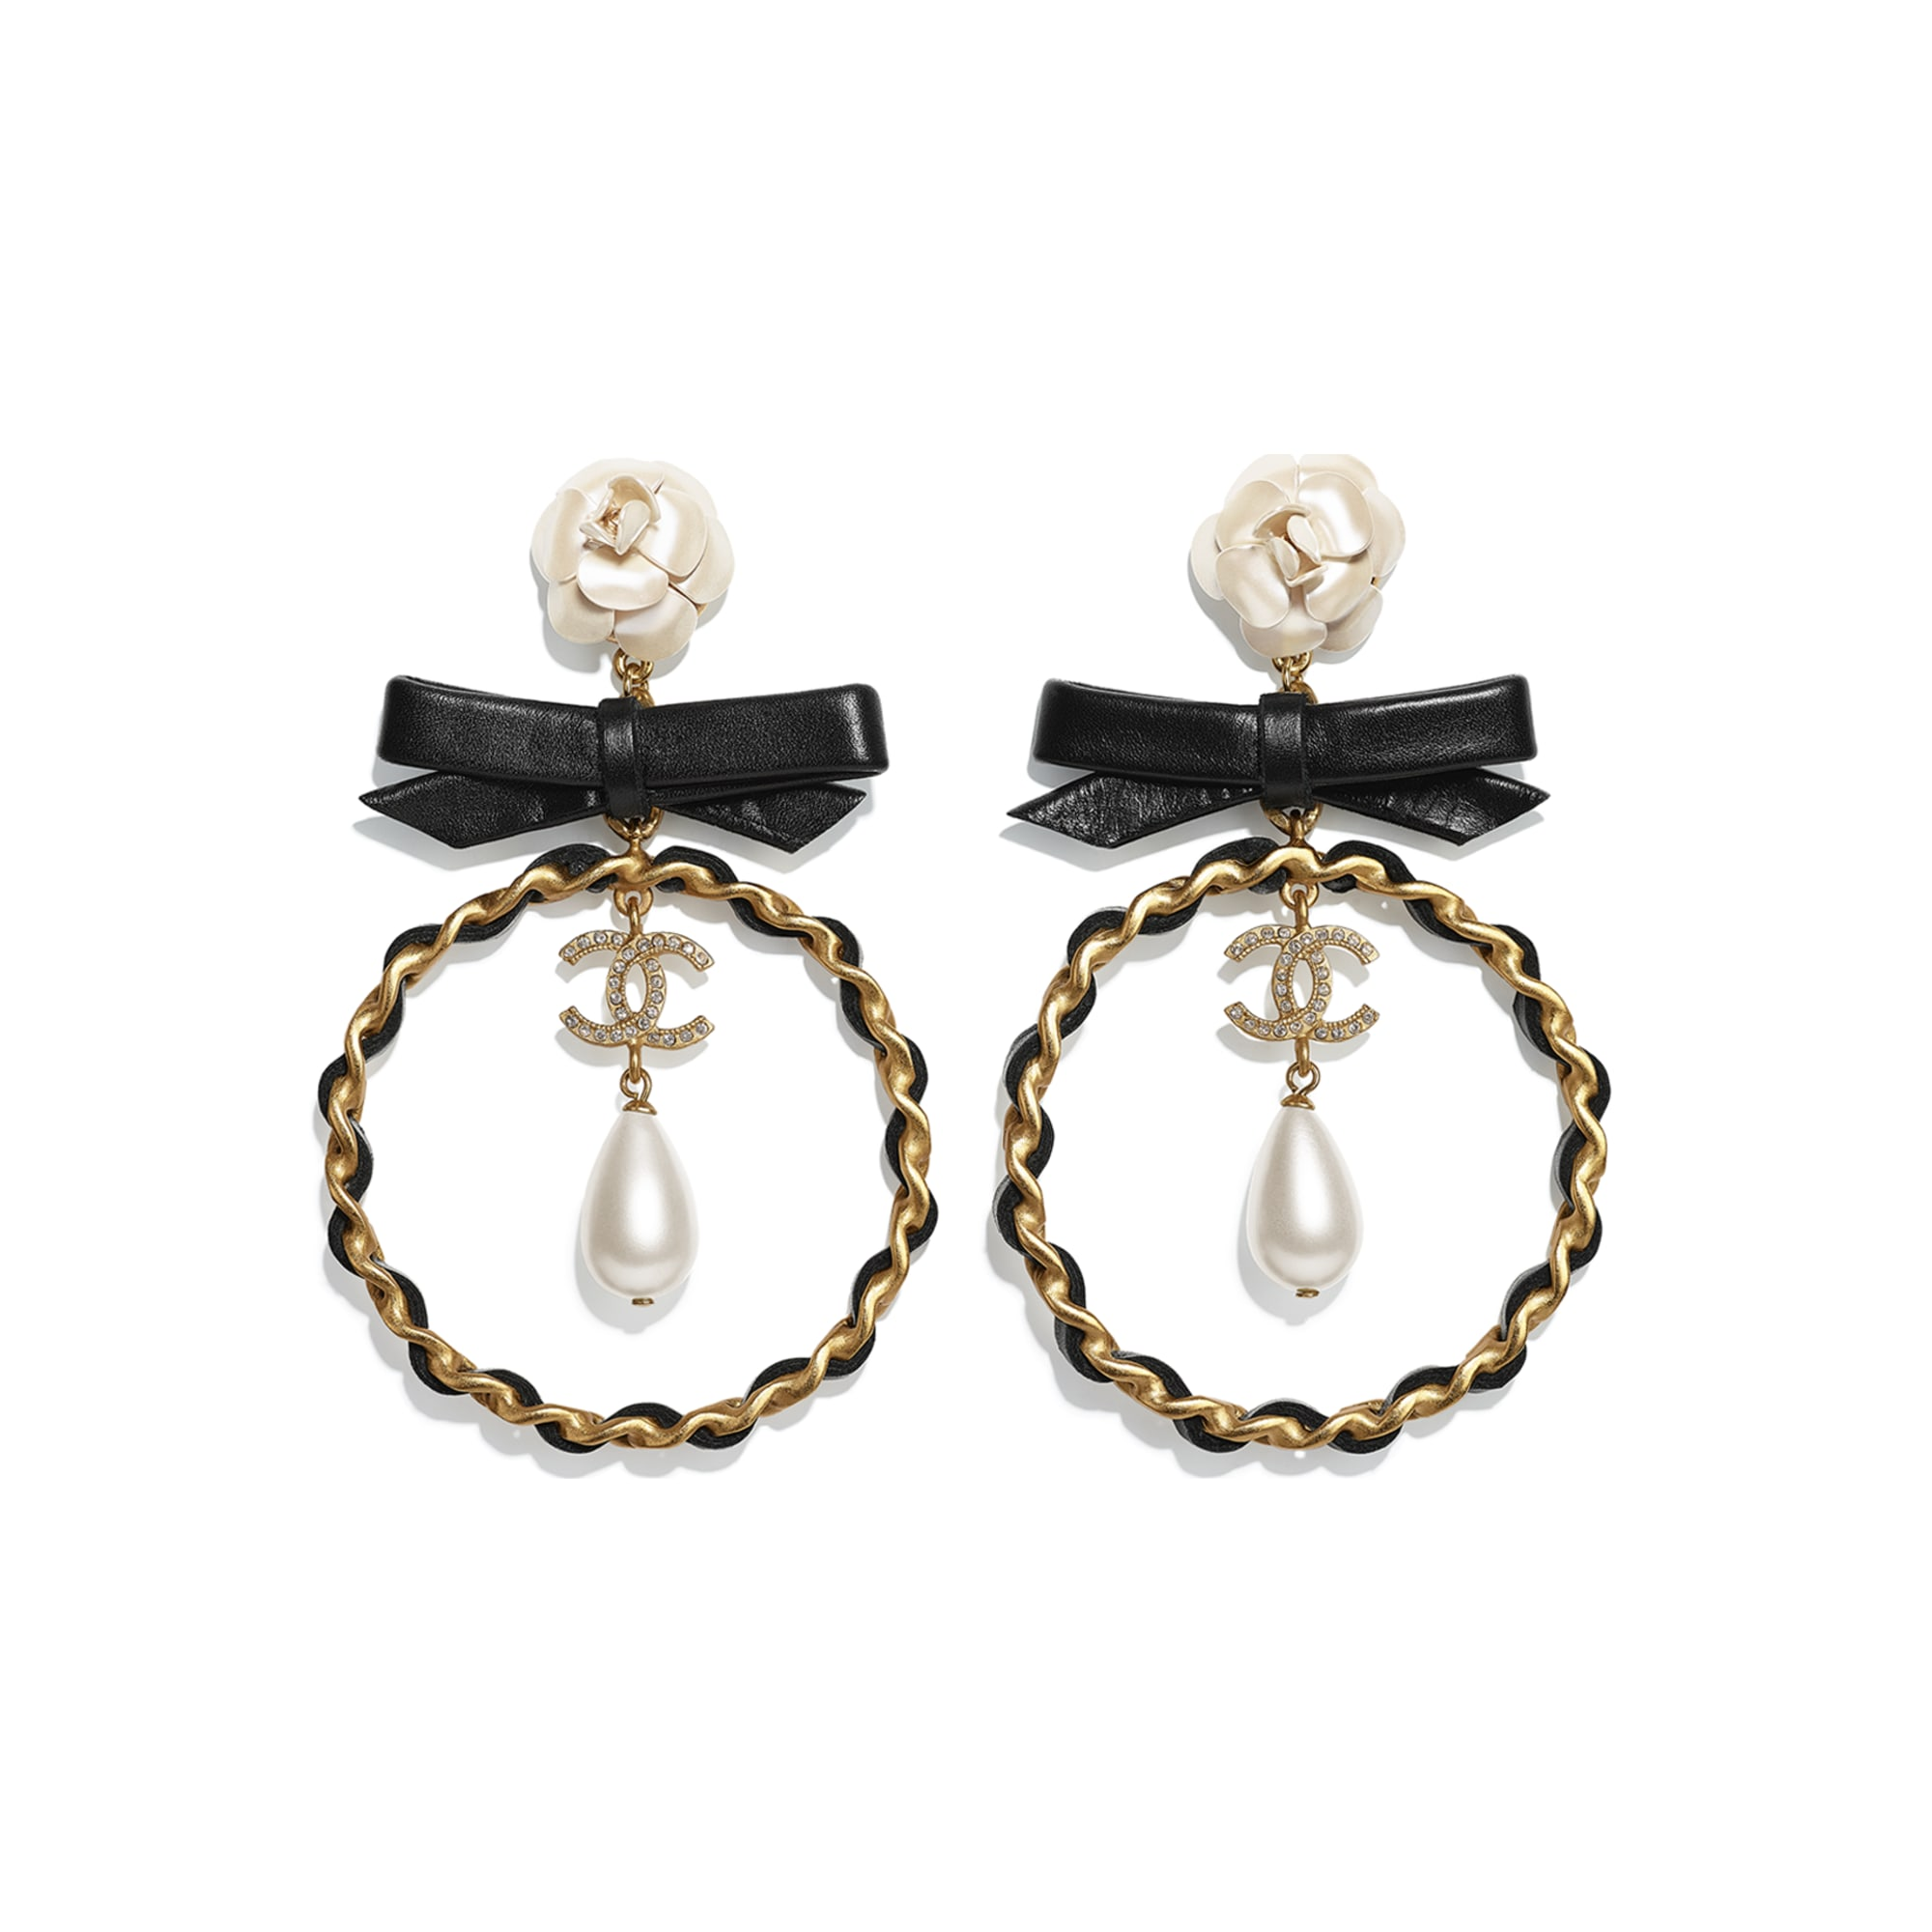 Earrings - Gold, Pearly White, Black & Crystal - Metal, glass pearls, calfskin & diamanté - CHANEL - Default view - see standard sized version